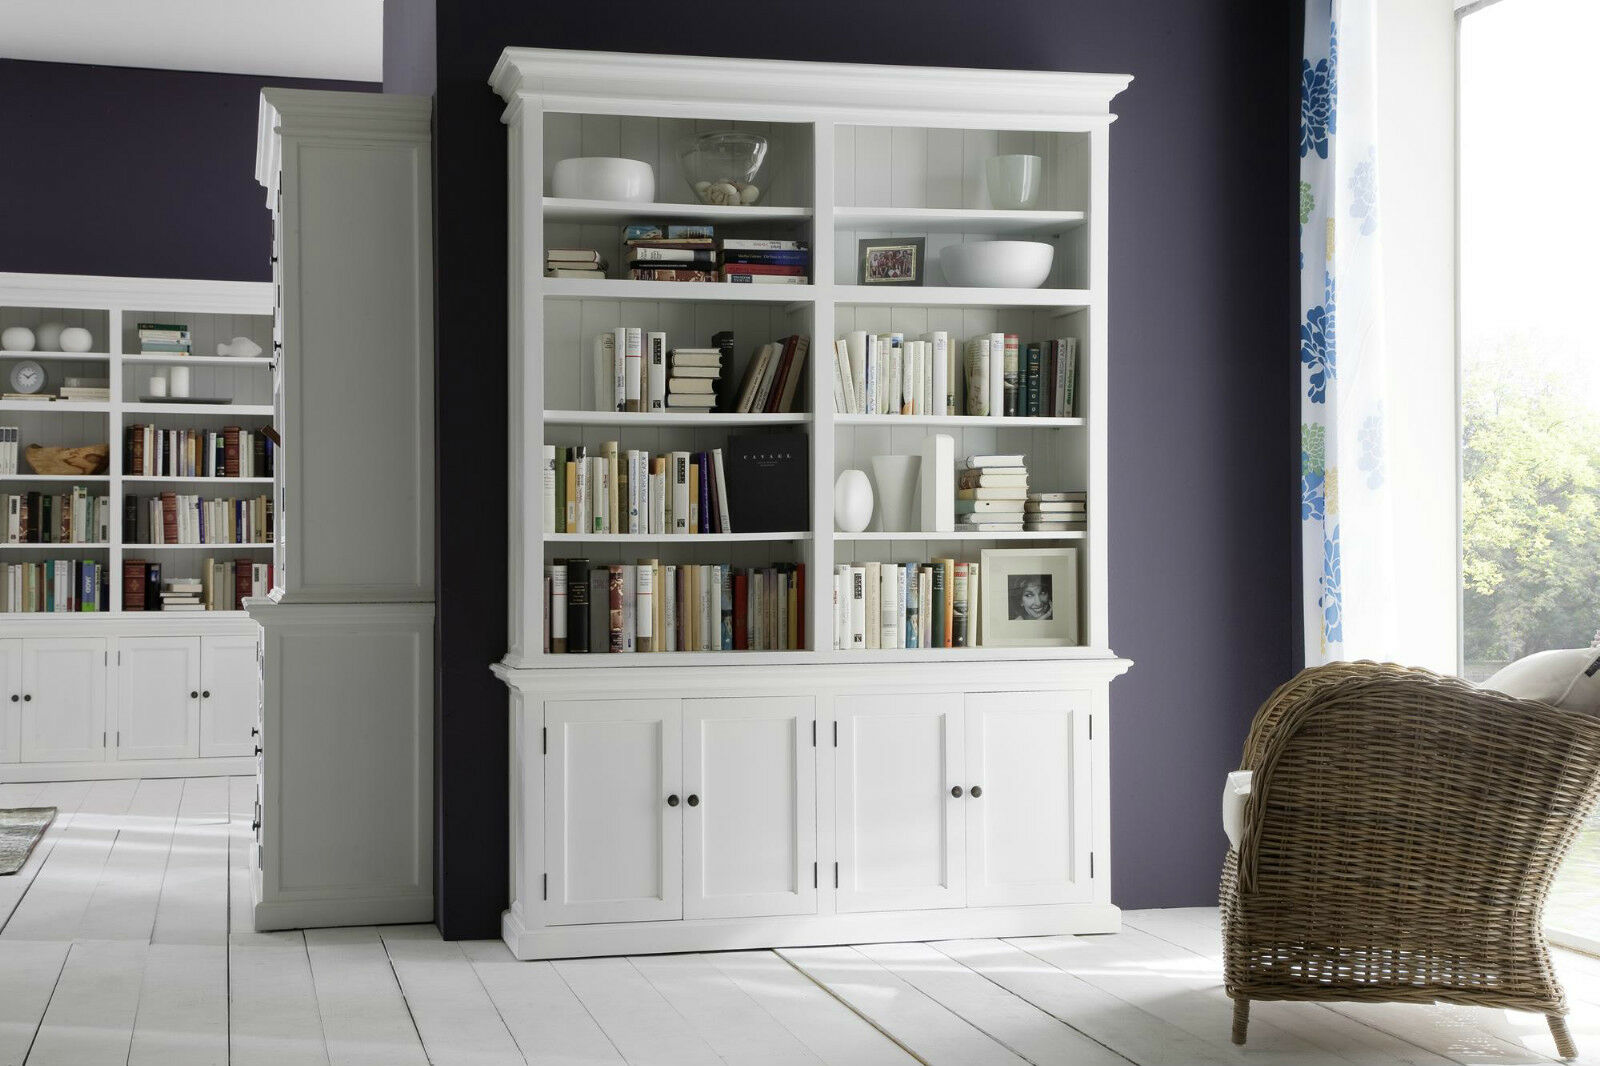 b cherregal regal schrank landhaus landhausstil shabby. Black Bedroom Furniture Sets. Home Design Ideas